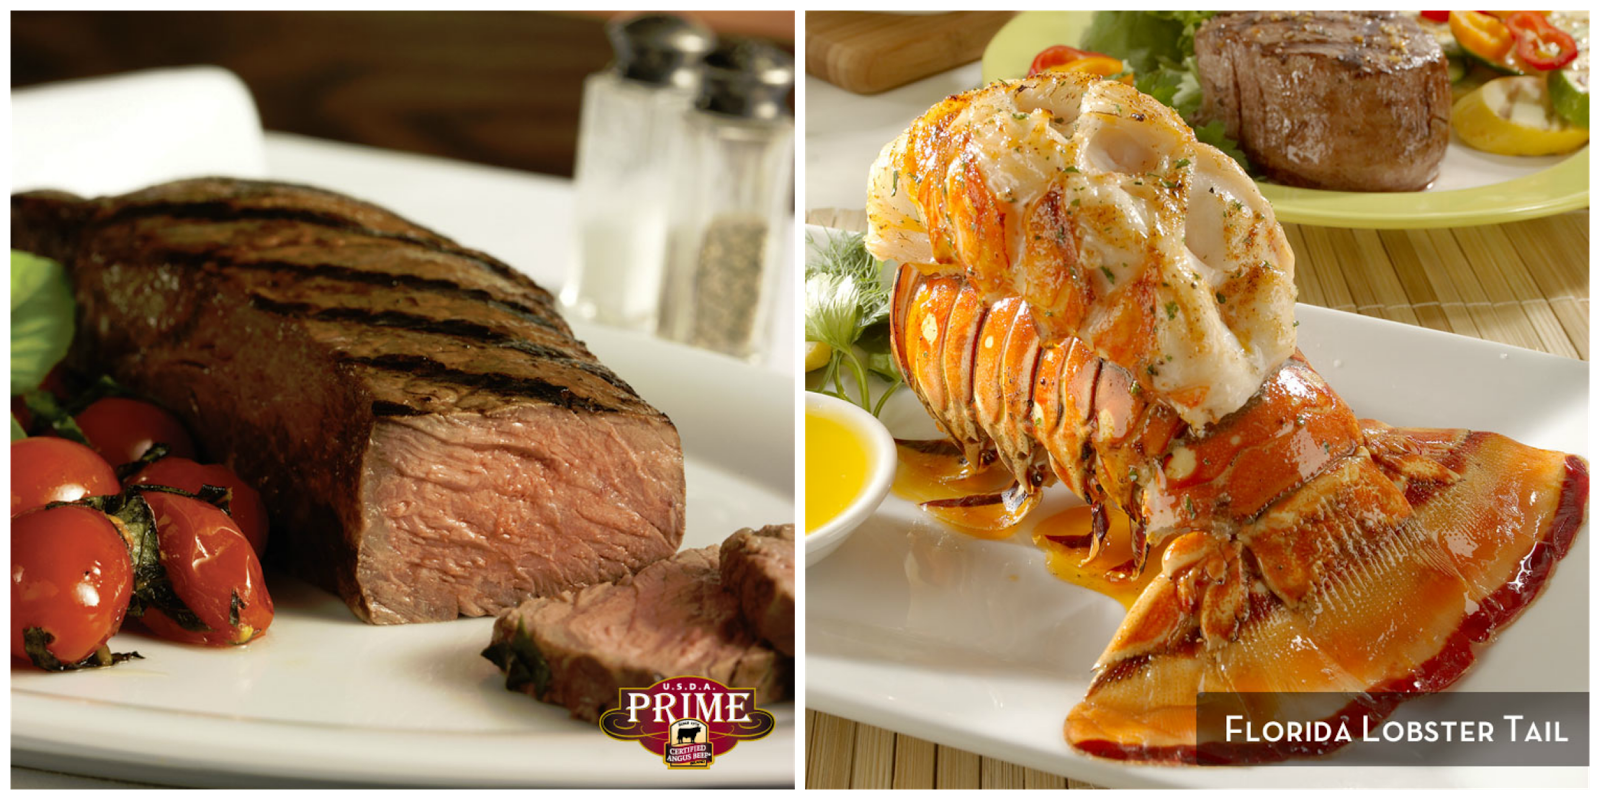 The Certified Steak and Seafood Company brings you the best steak and seafood offerings, from certified angus beef to lobster tails and more - featured at dalmanco.ml